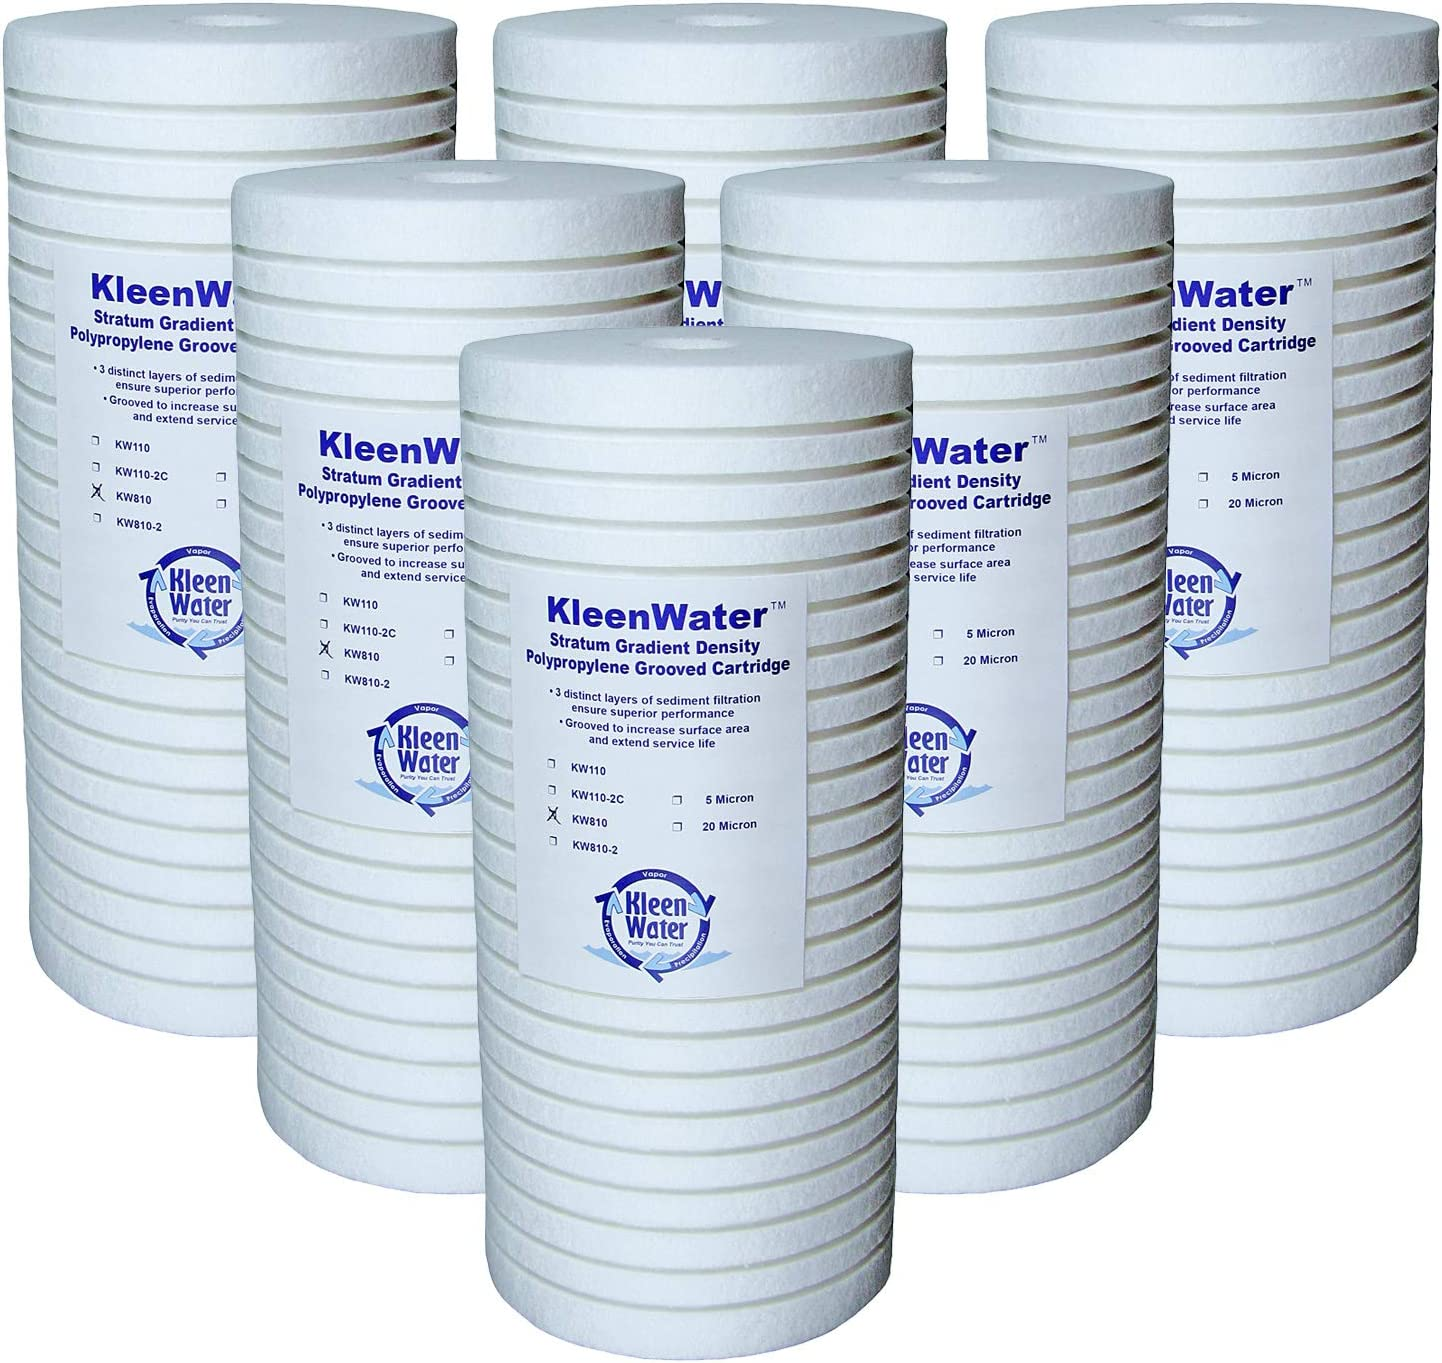 KleenWater KW810 Replacement Water Filter Cartridges, Compatible with Aqua-Pure AP810, 5 Micron Dirt Rust Sediment Whole House Filters, Set of 6